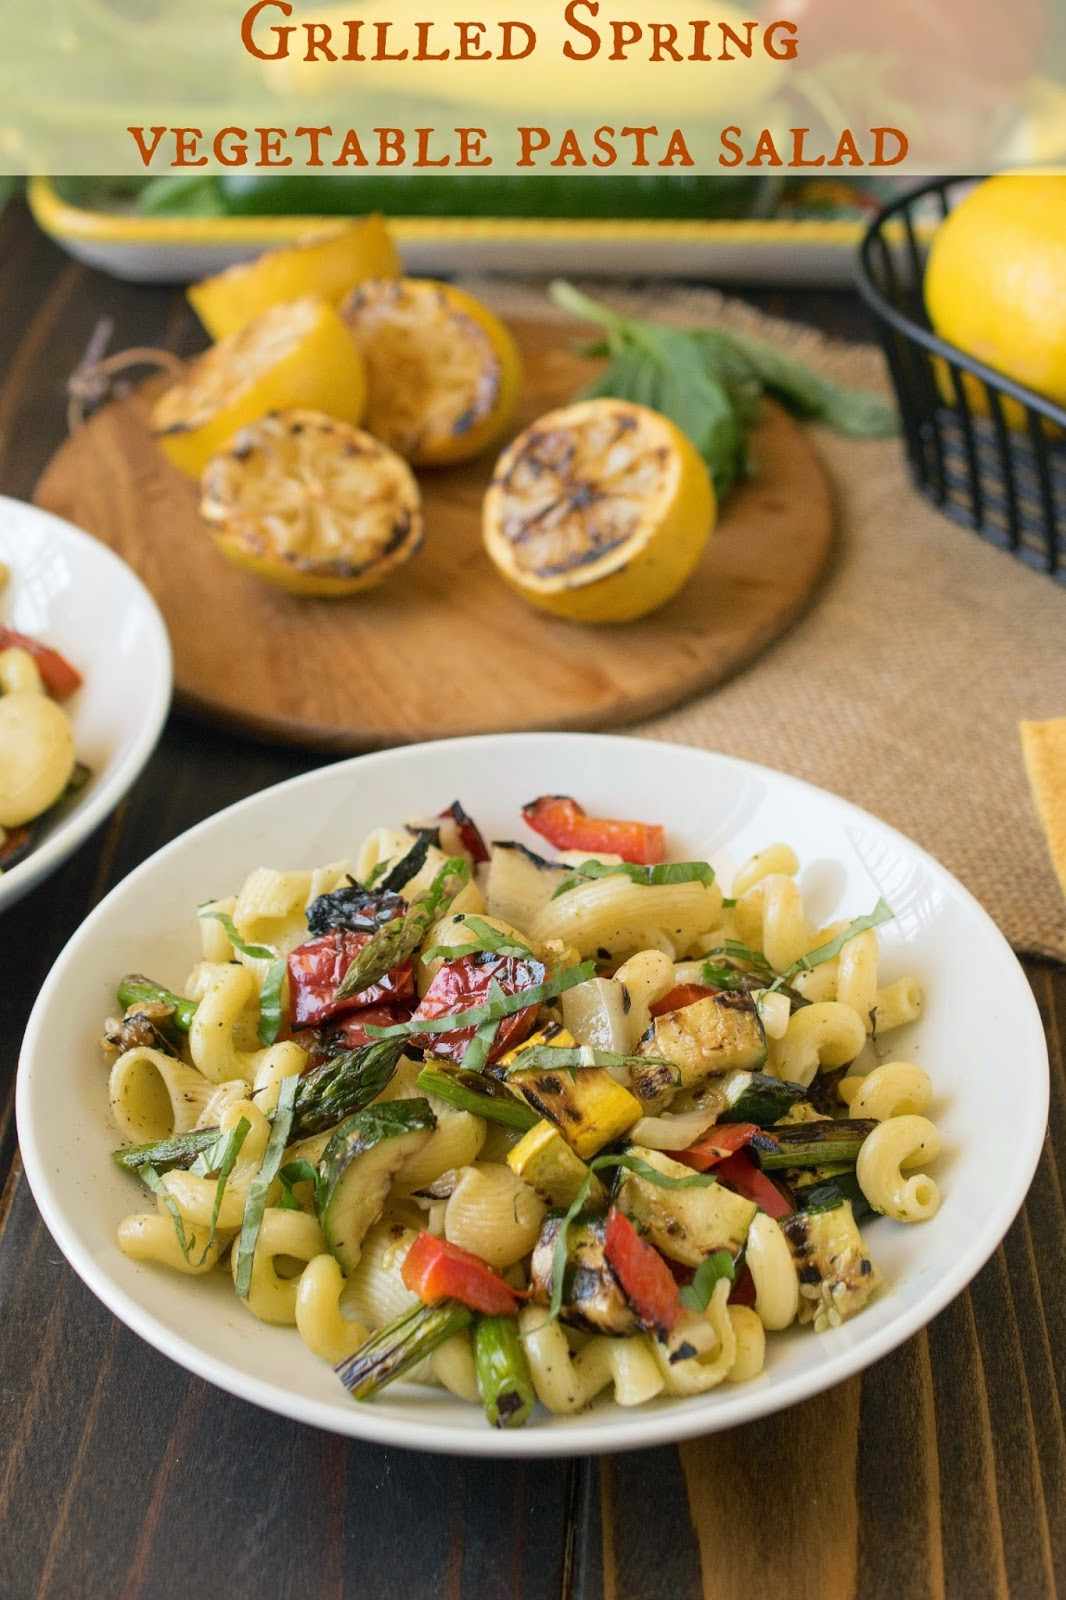 Grilled Spring vegetable pasta salad in a white bowl with grilled lemon halves on a board behind